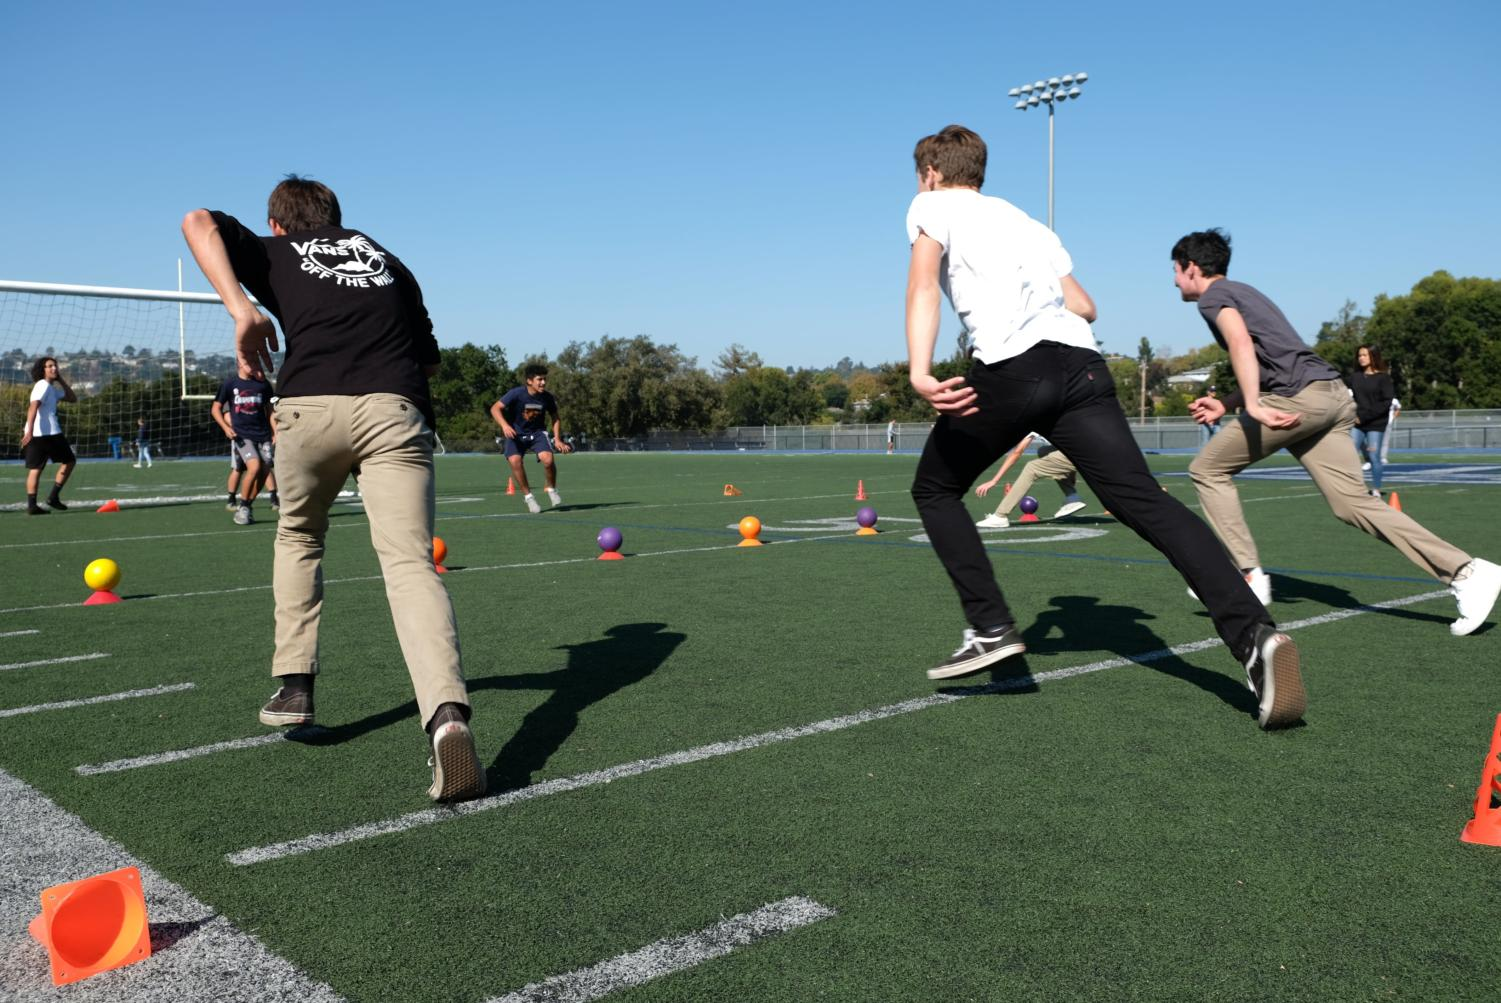 As the round began, students raced towards the line of dodgeballs.